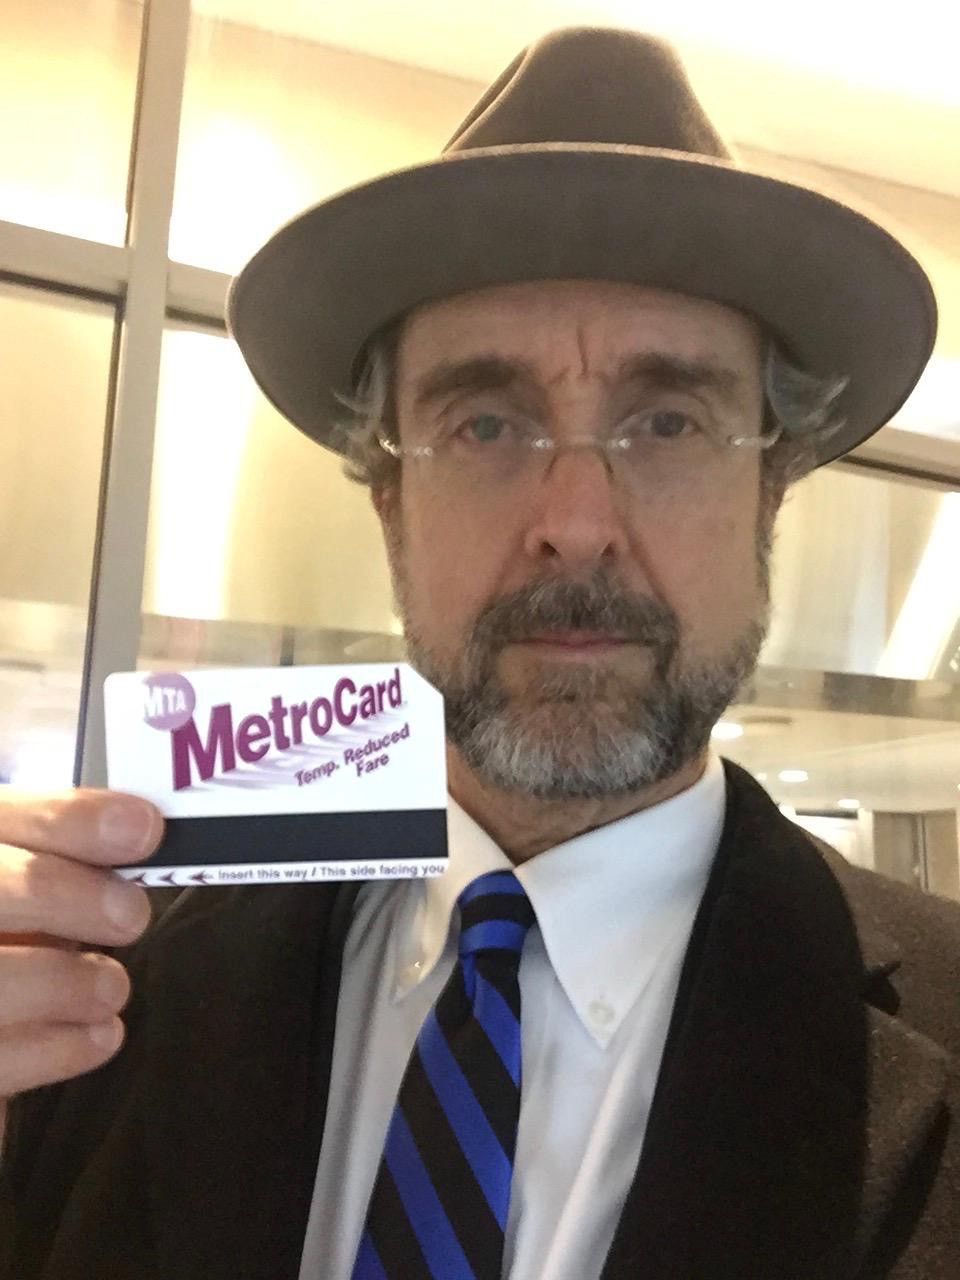 The author approaching 66, with his senior discount subway fare card.